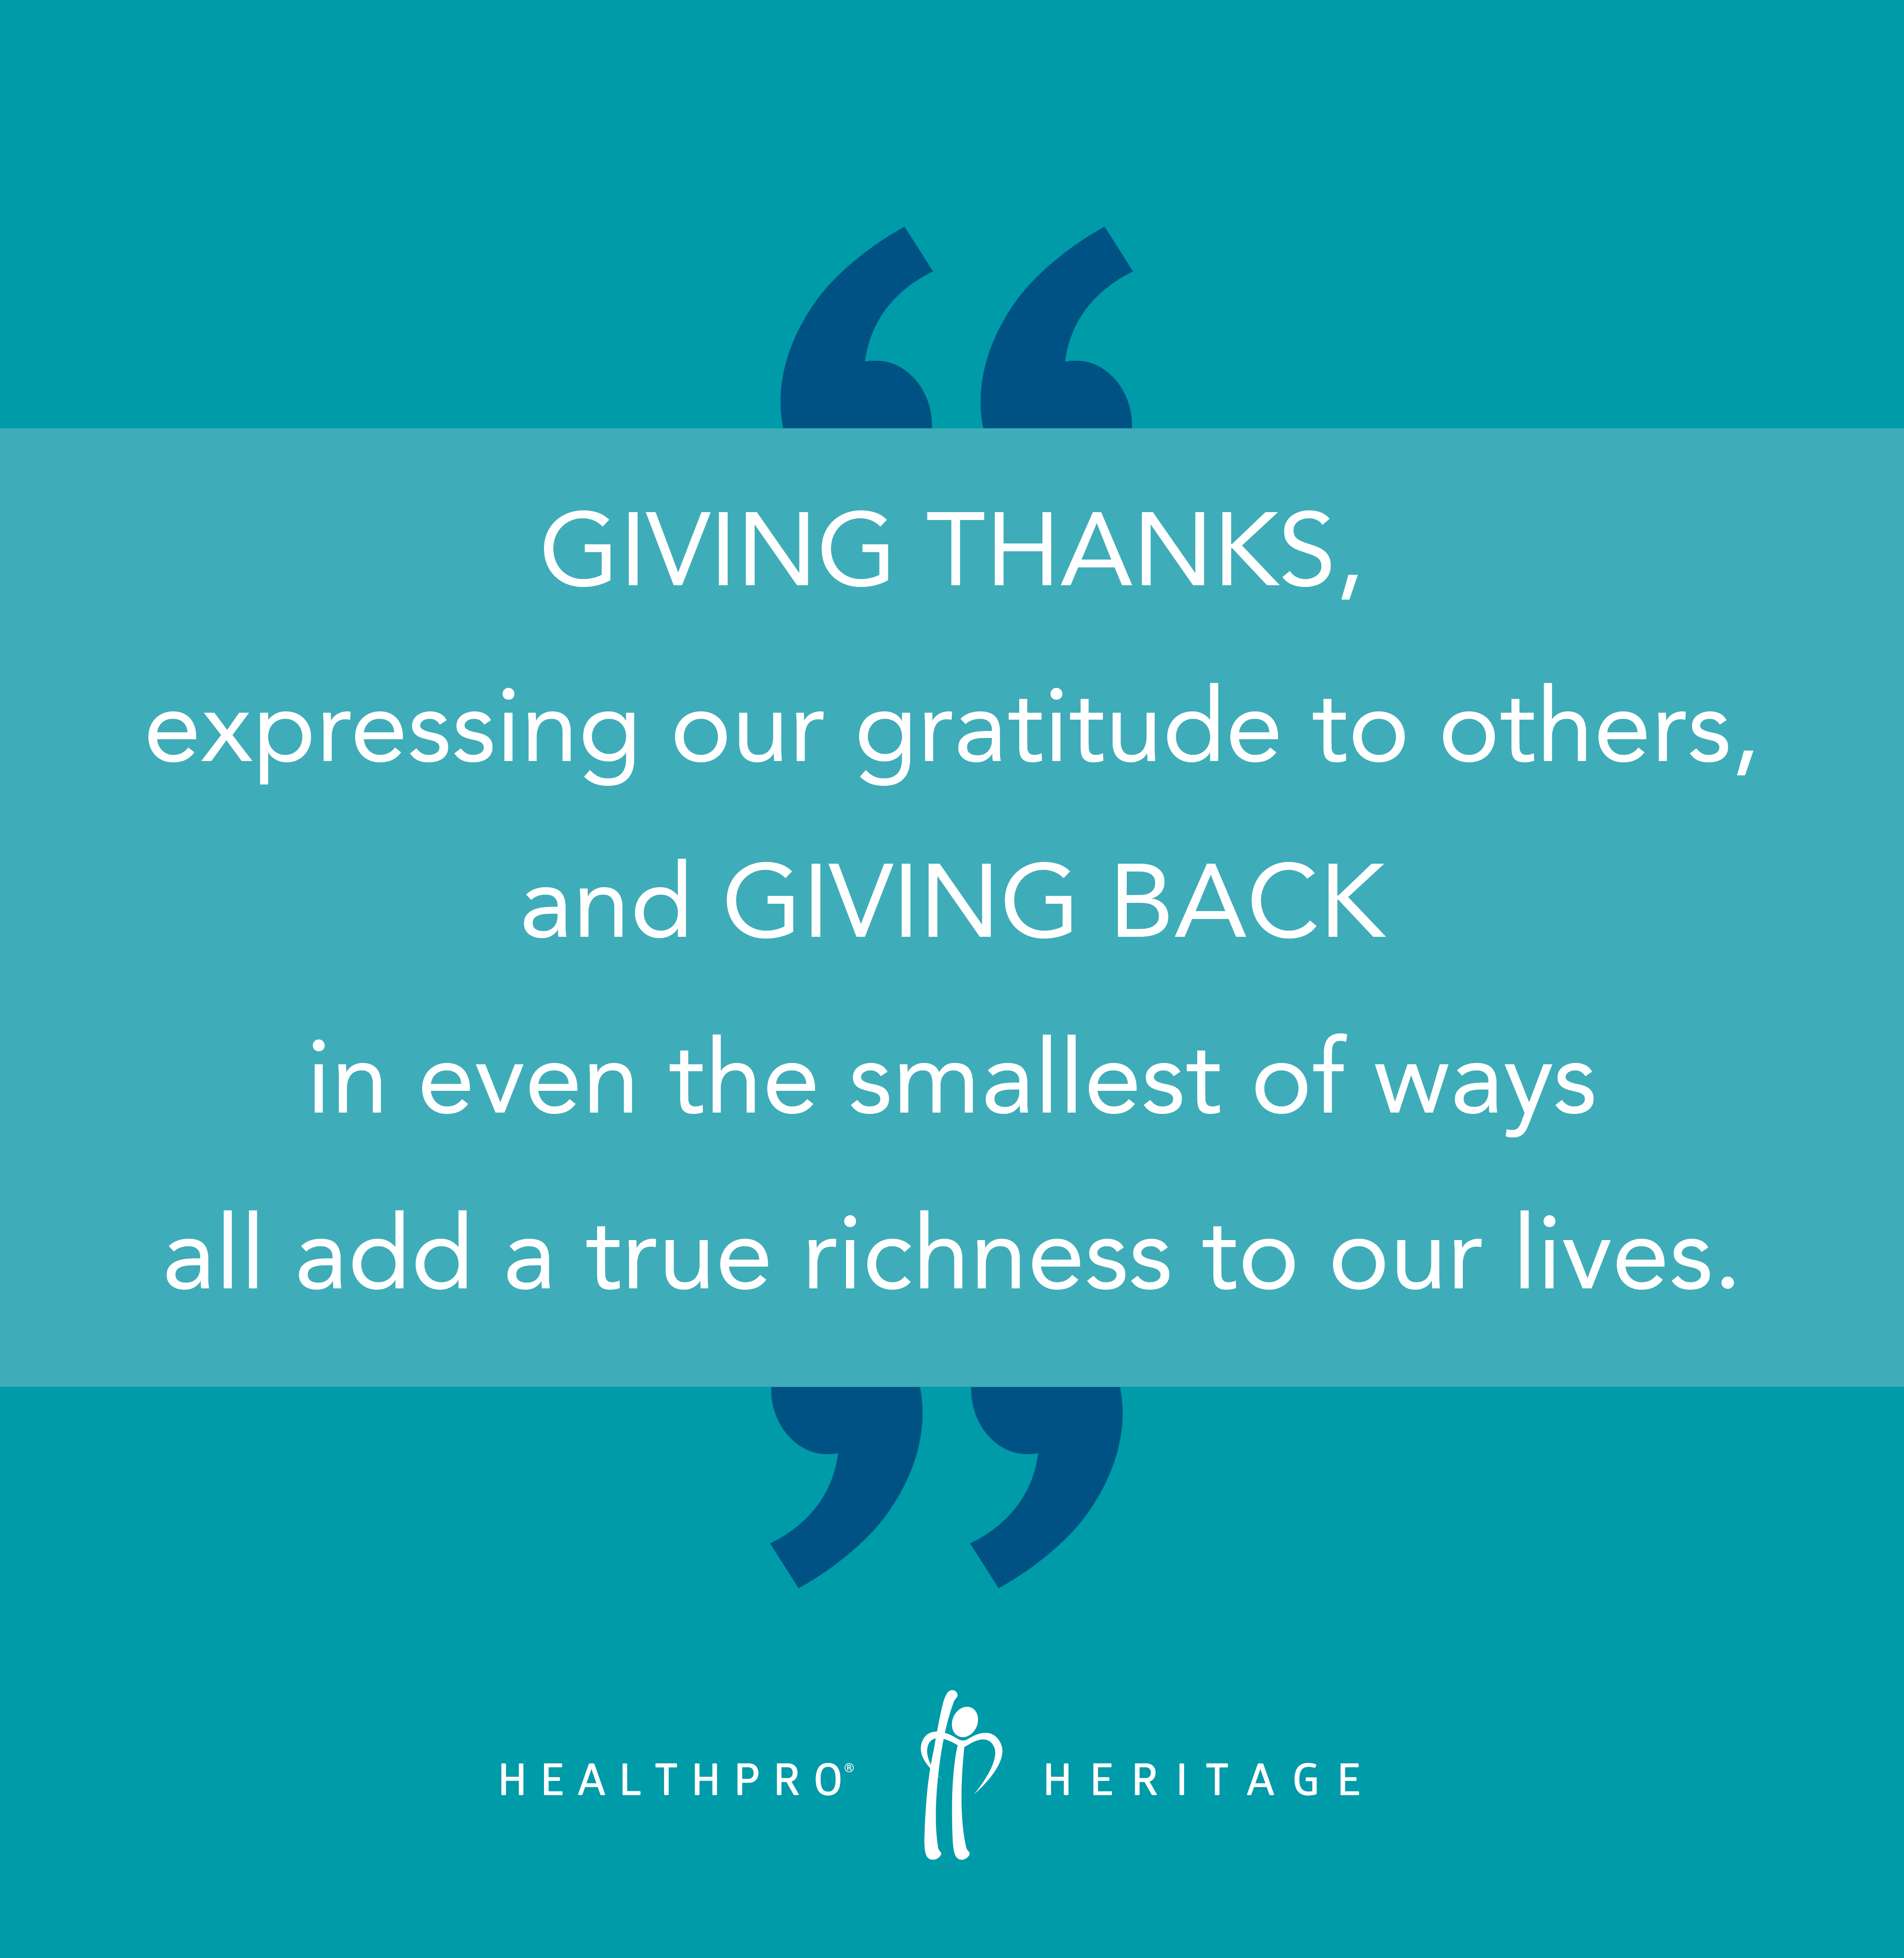 Giving thanks, expressing our gratitude to others, an giving back, in even the smallest of ways all add a true richness to our lives.